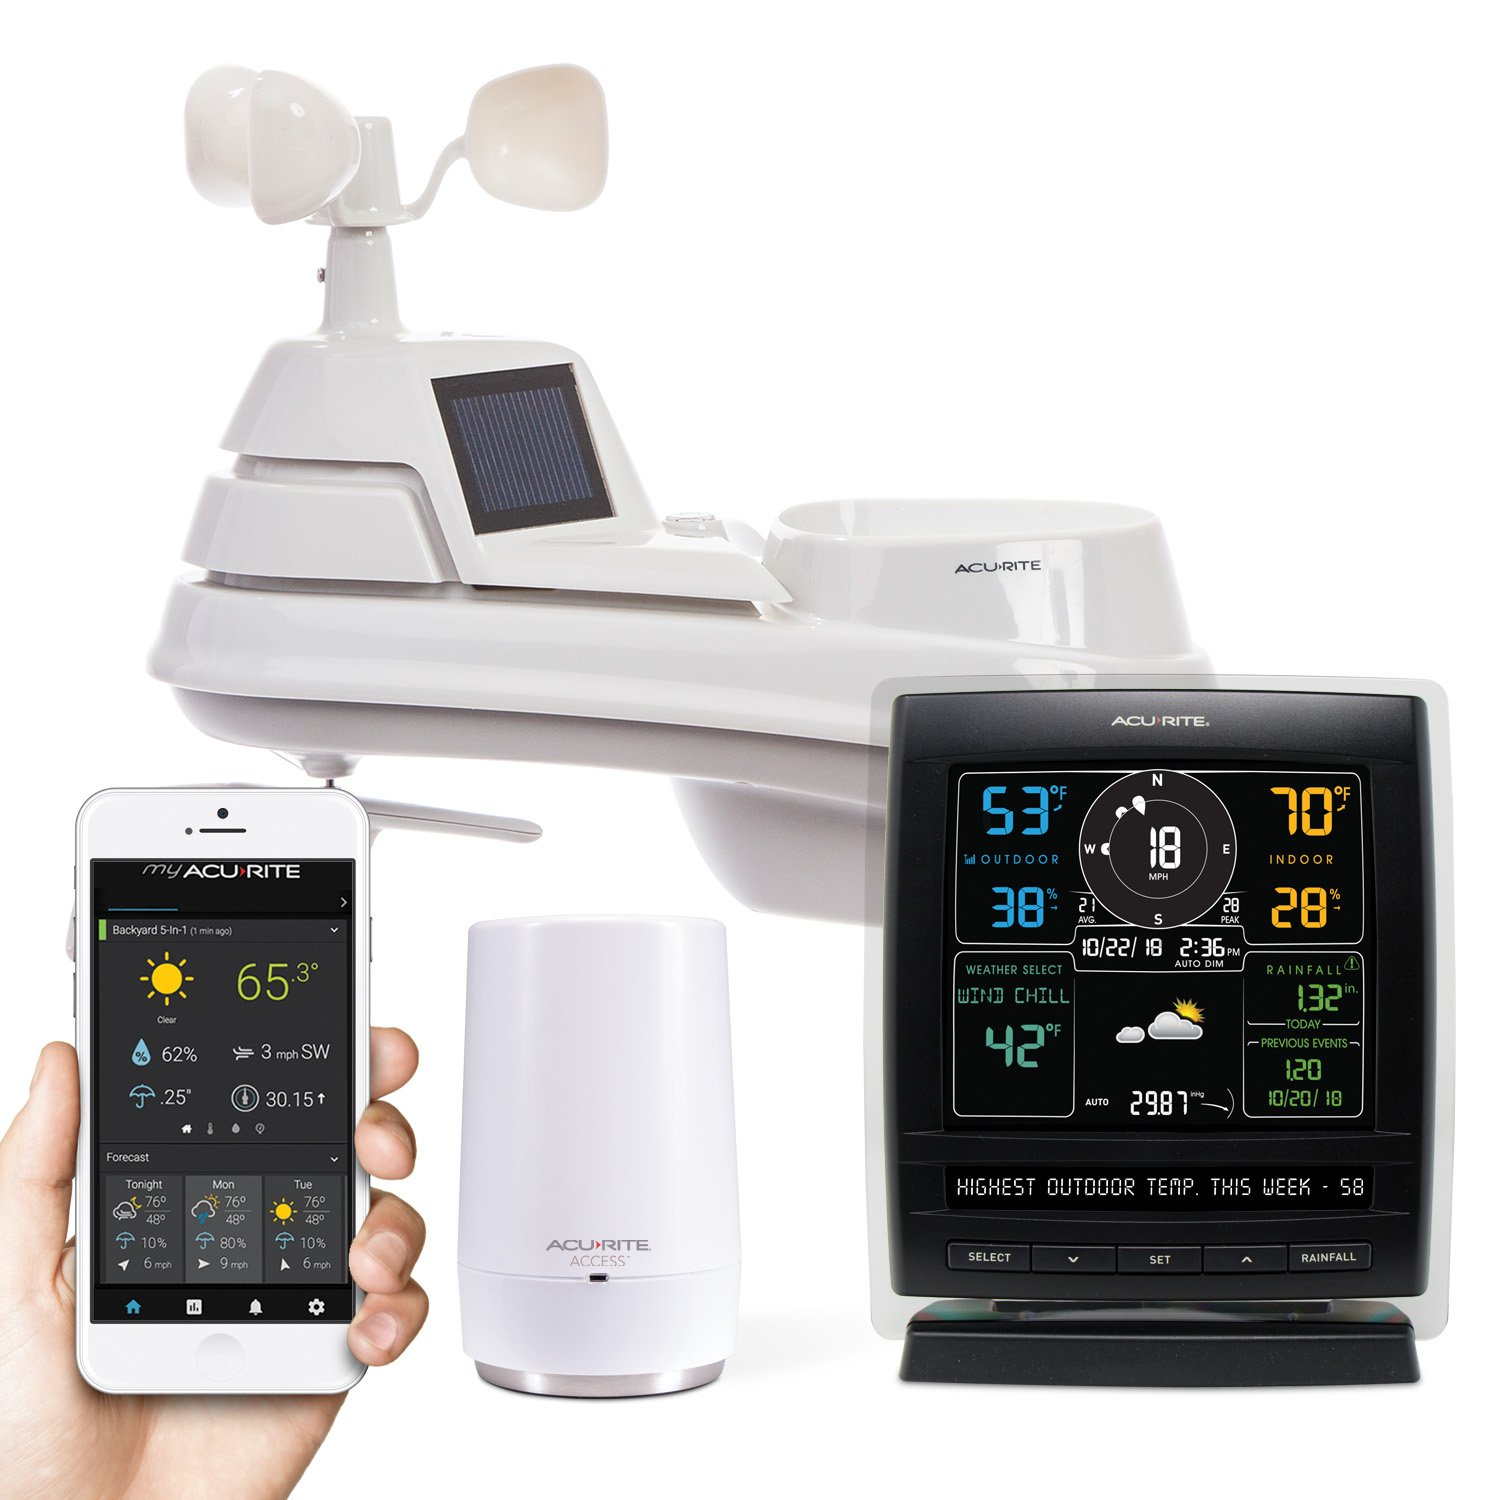 AcuRite 01013M Weather Station with AcuRite Access, Color Display and Remote Monitoring by AcuRite